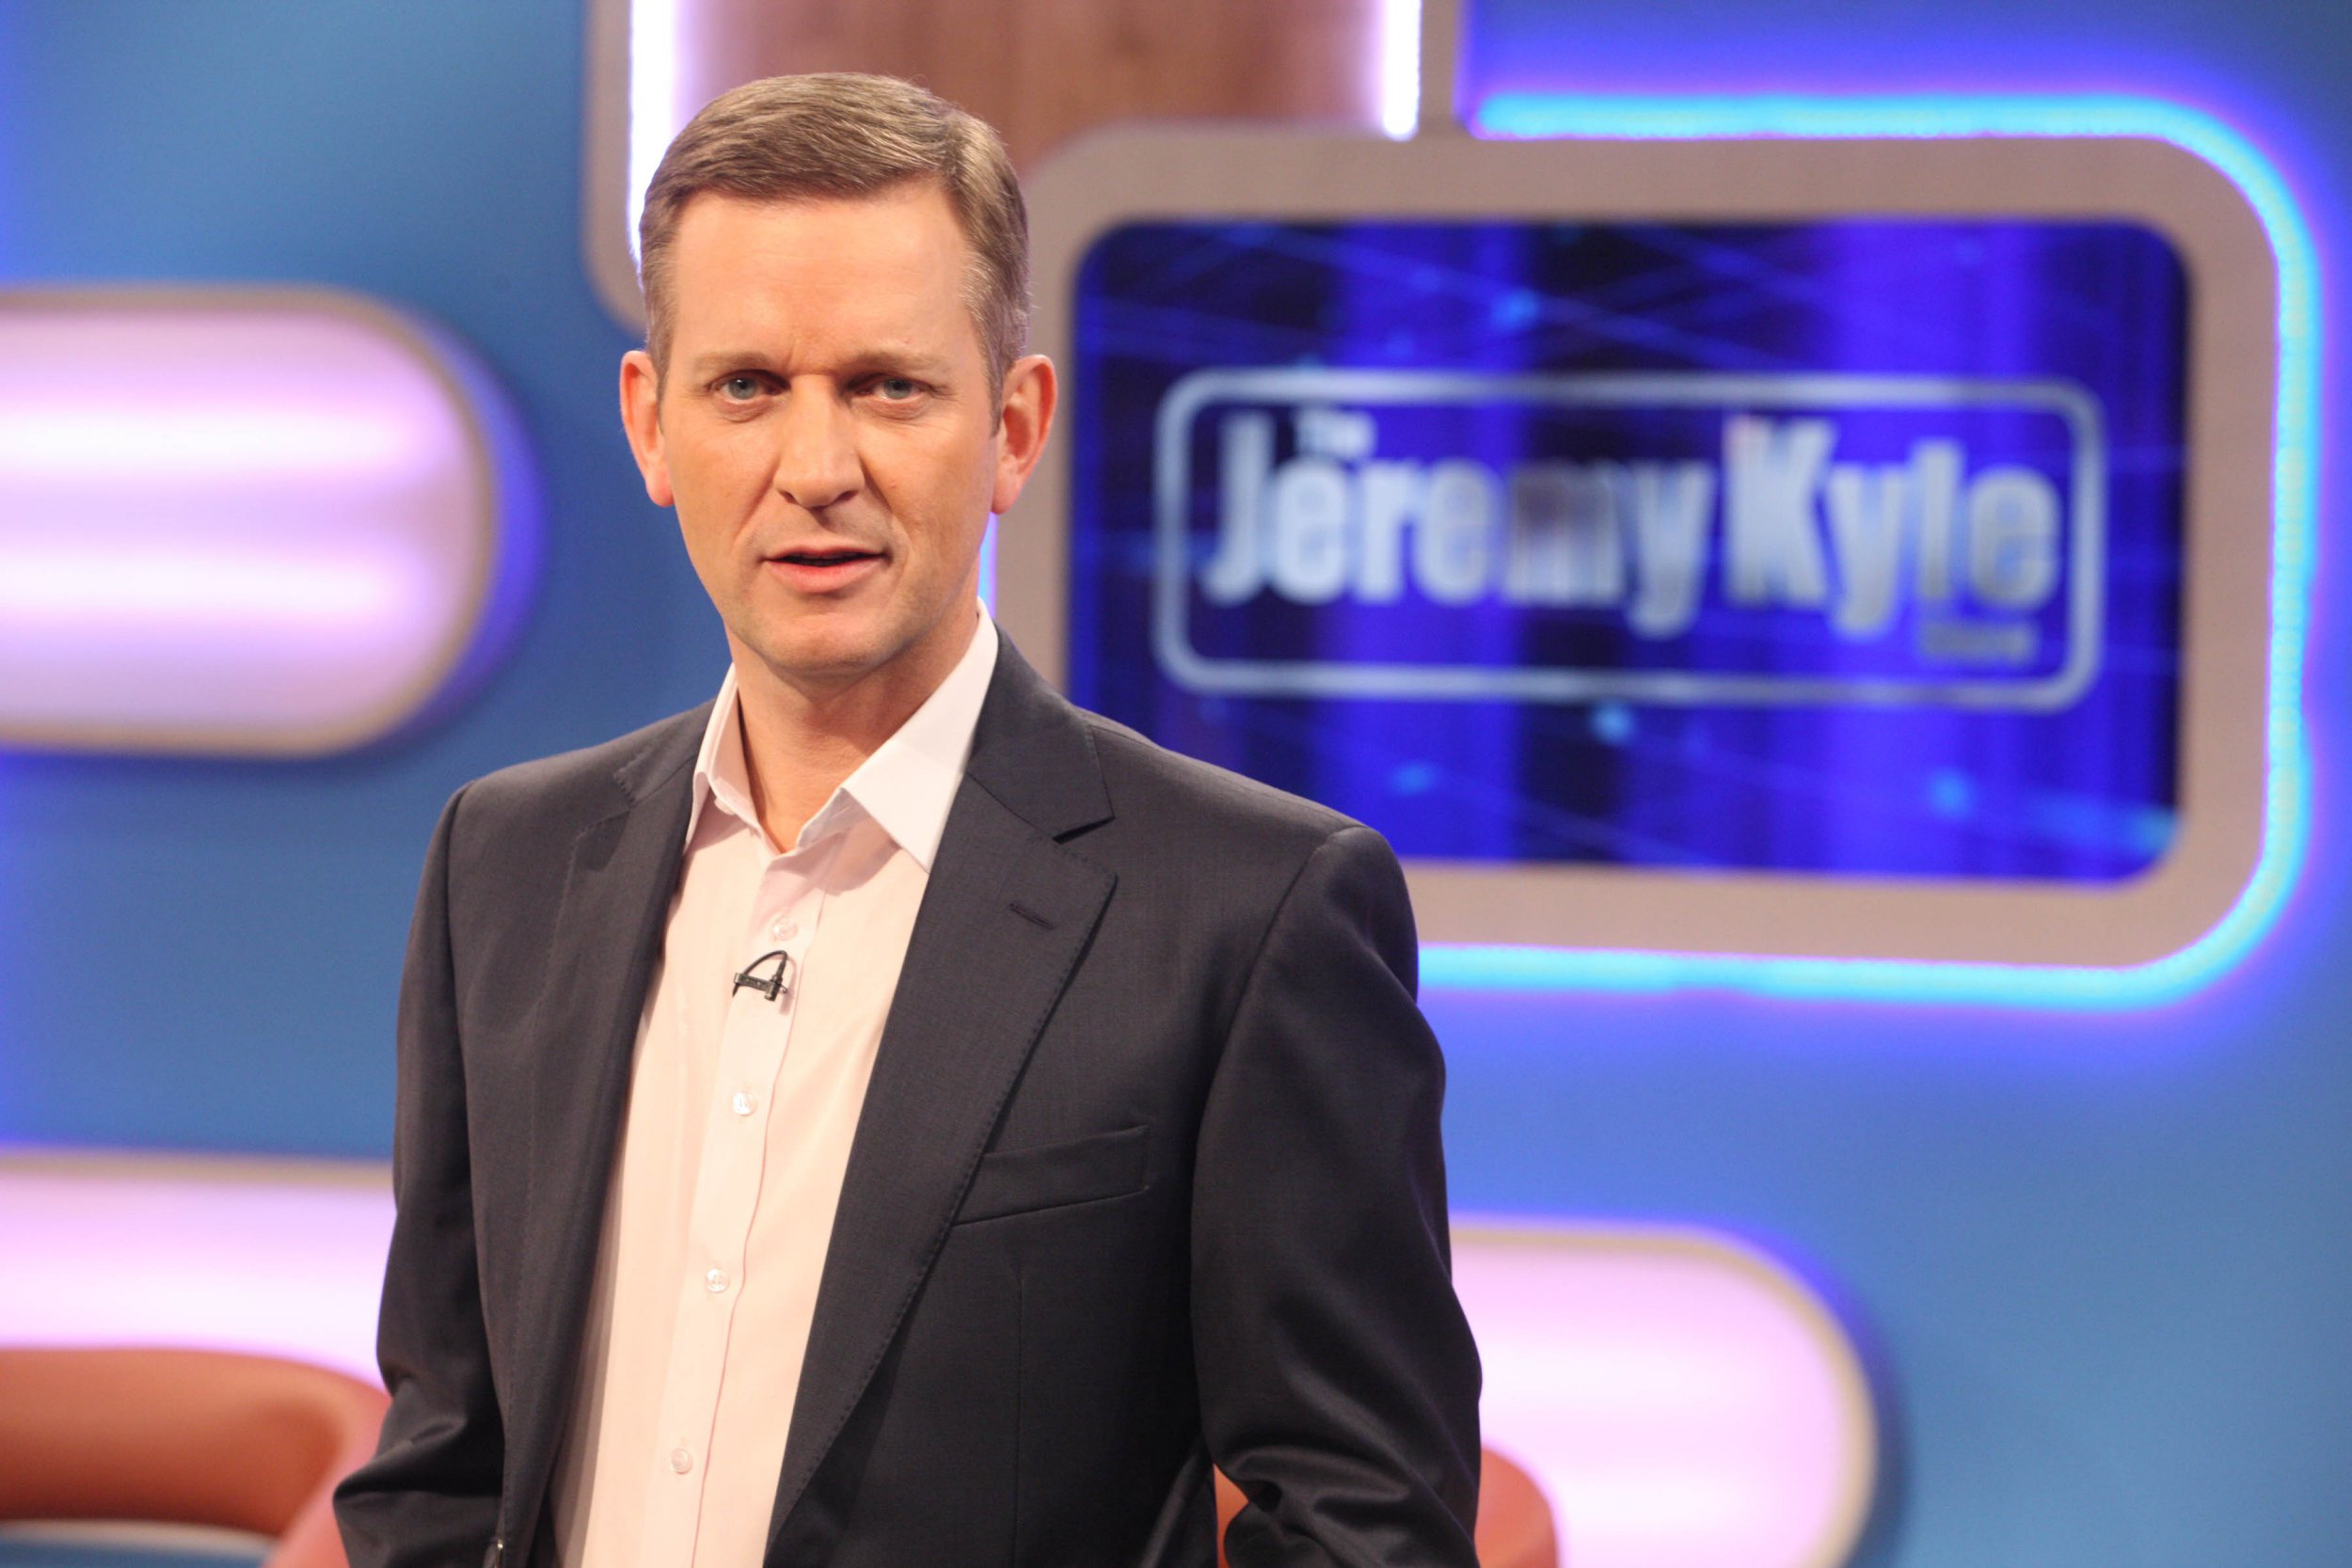 Jeremy Kyle Show's crew 'get no support' as they panic to find new jobs after show's axe